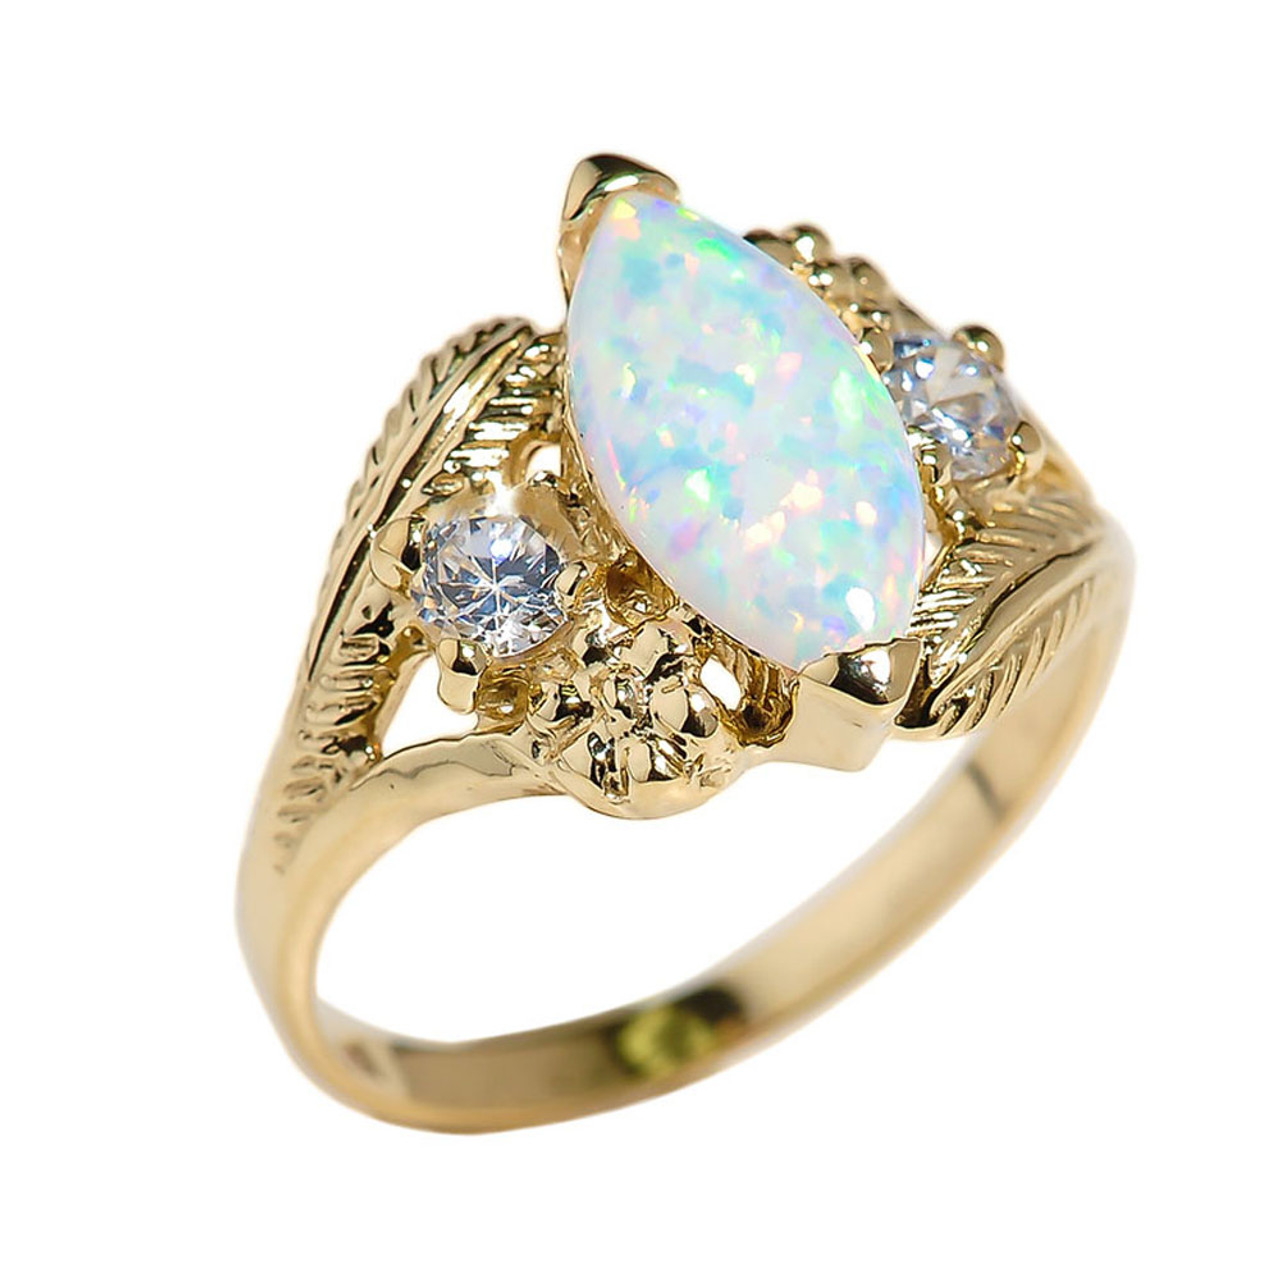 Details about  /0.75 Ct Marquise Opal Sim Diamond Women/'s Ring 14K Yellow Gold FN 925 Silver